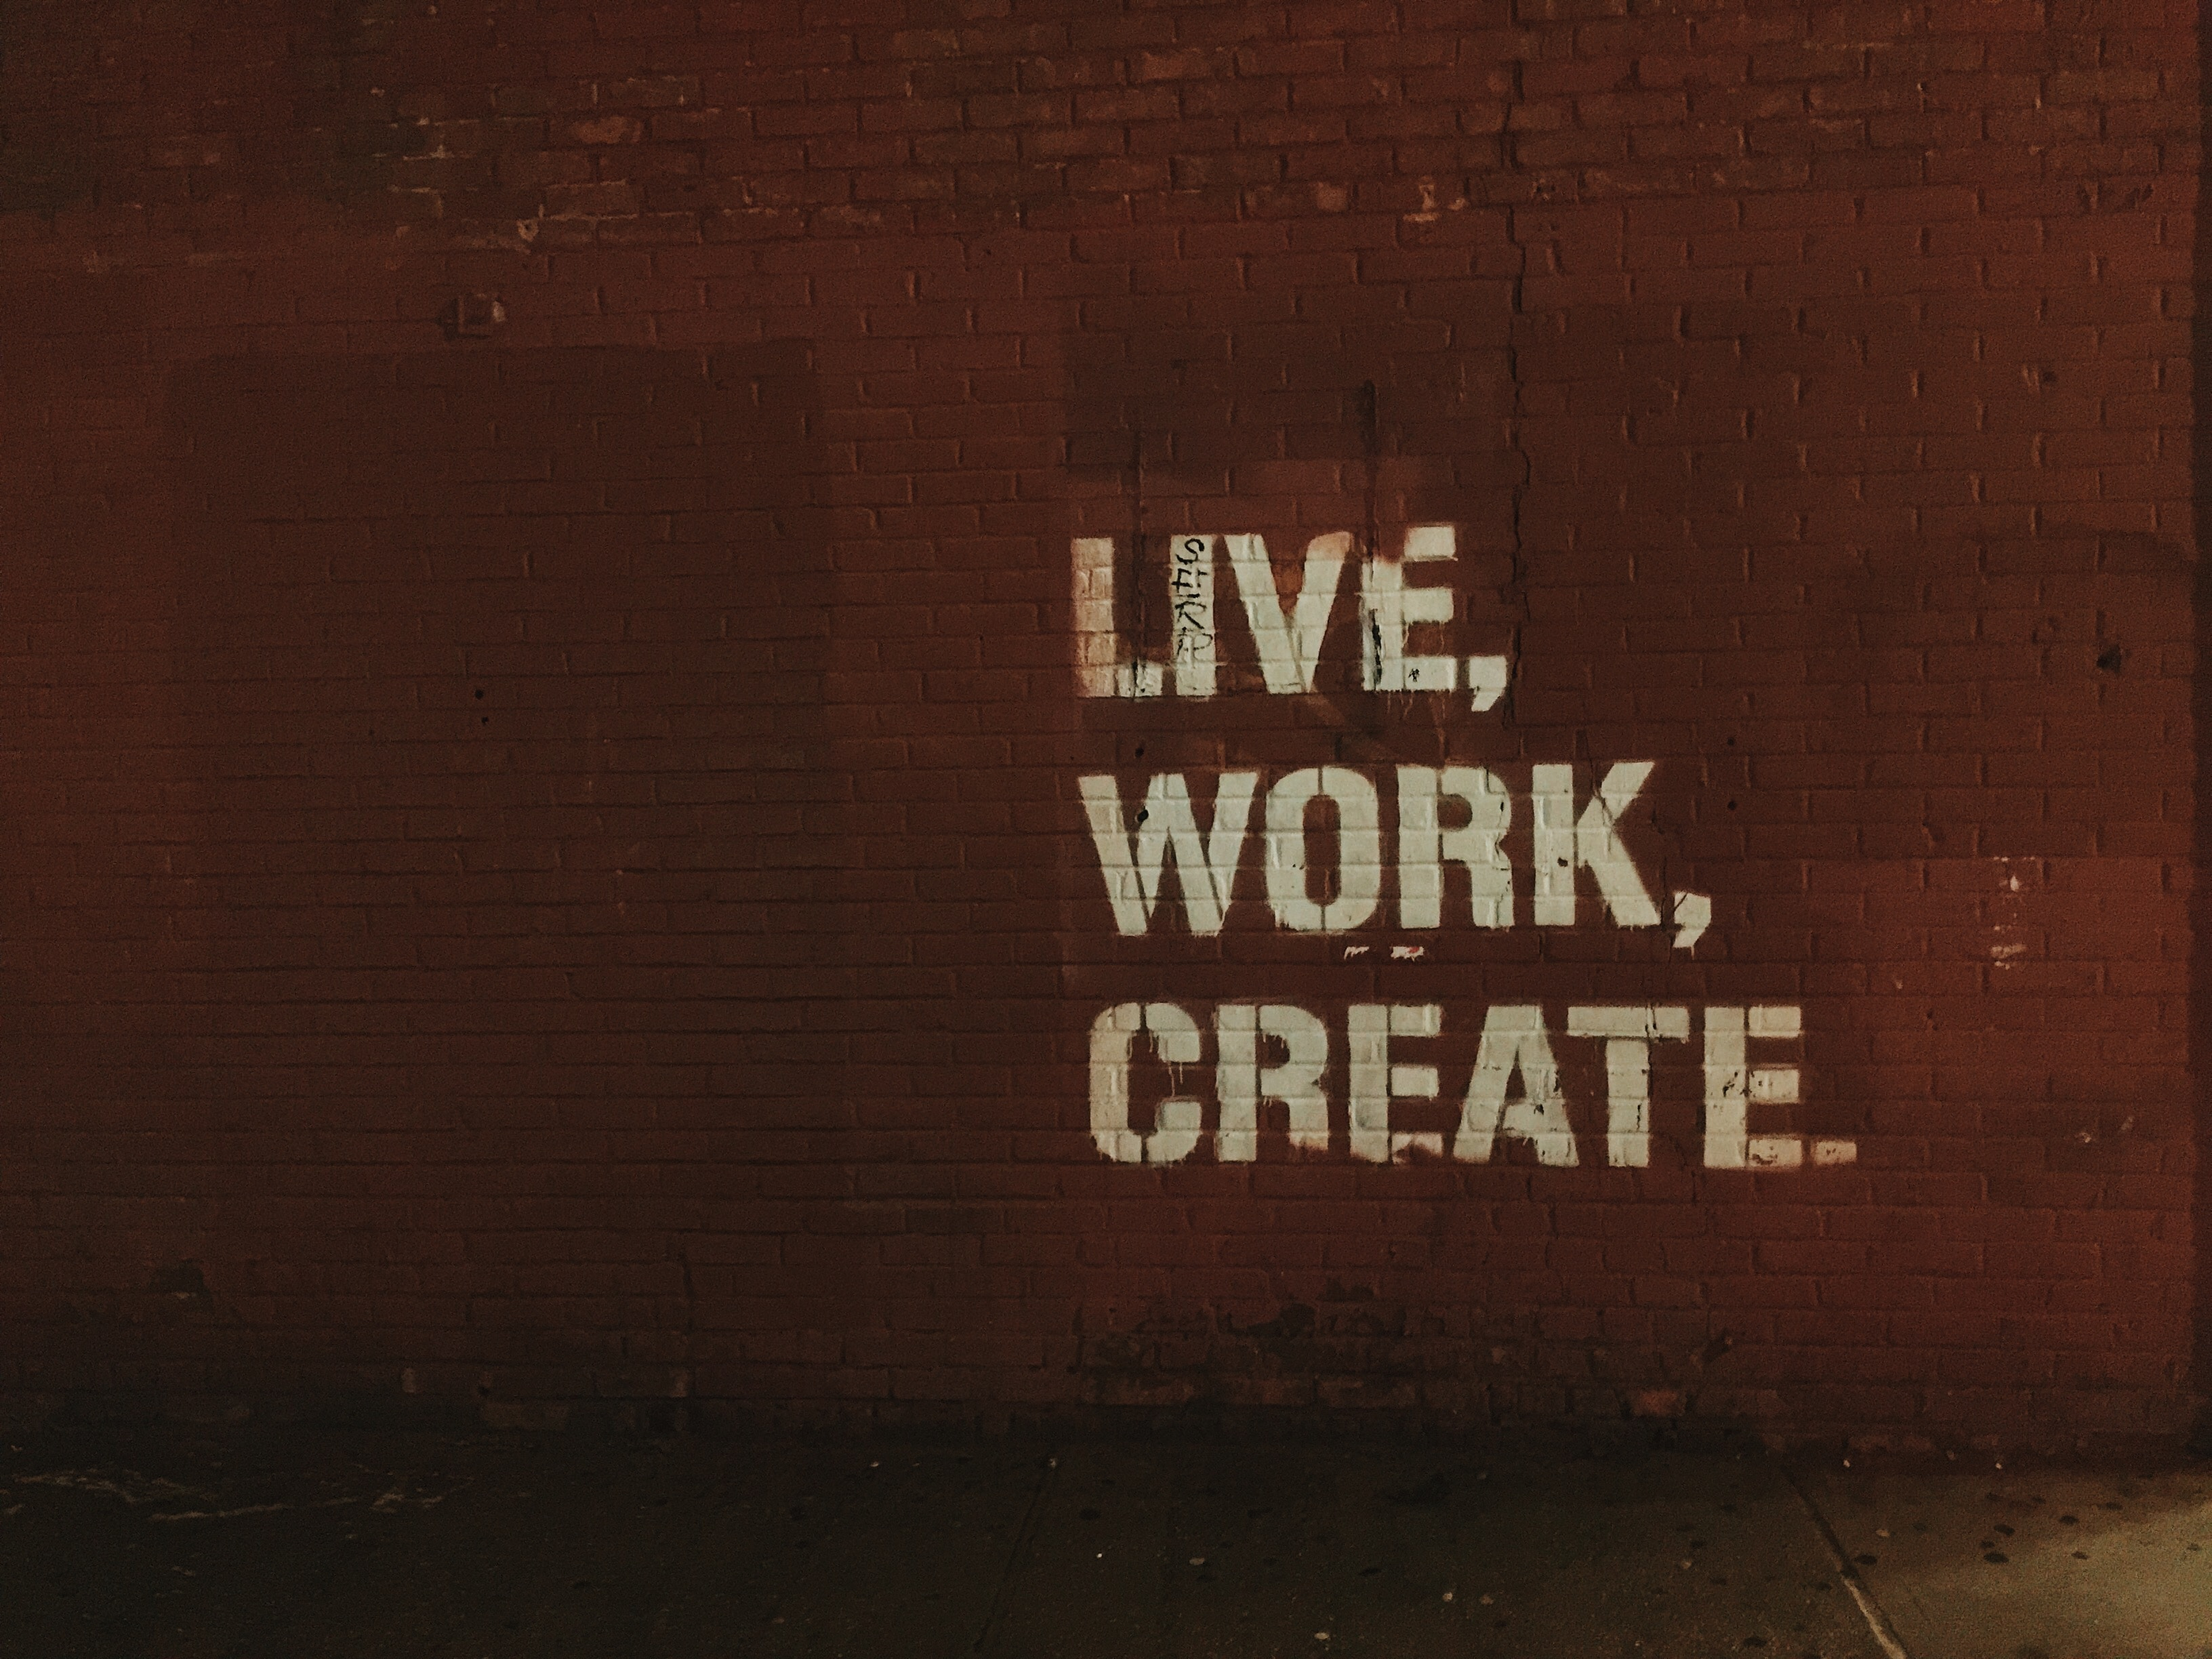 """A brown brick wall with the words """"Live. Work. Create."""" spraypainted on it."""